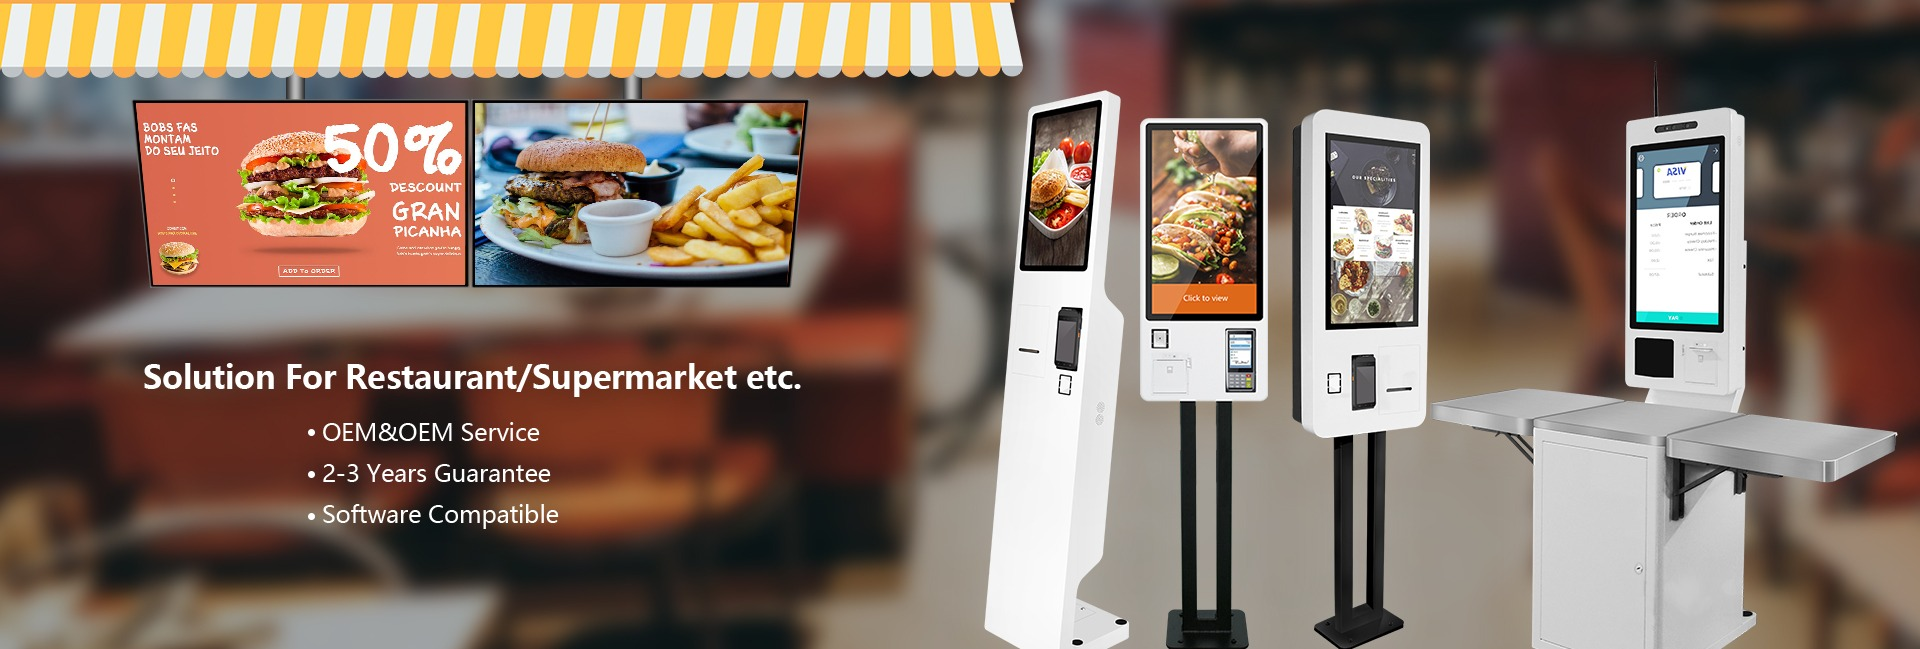 food ordering apps Digital Screens and self order kiosk